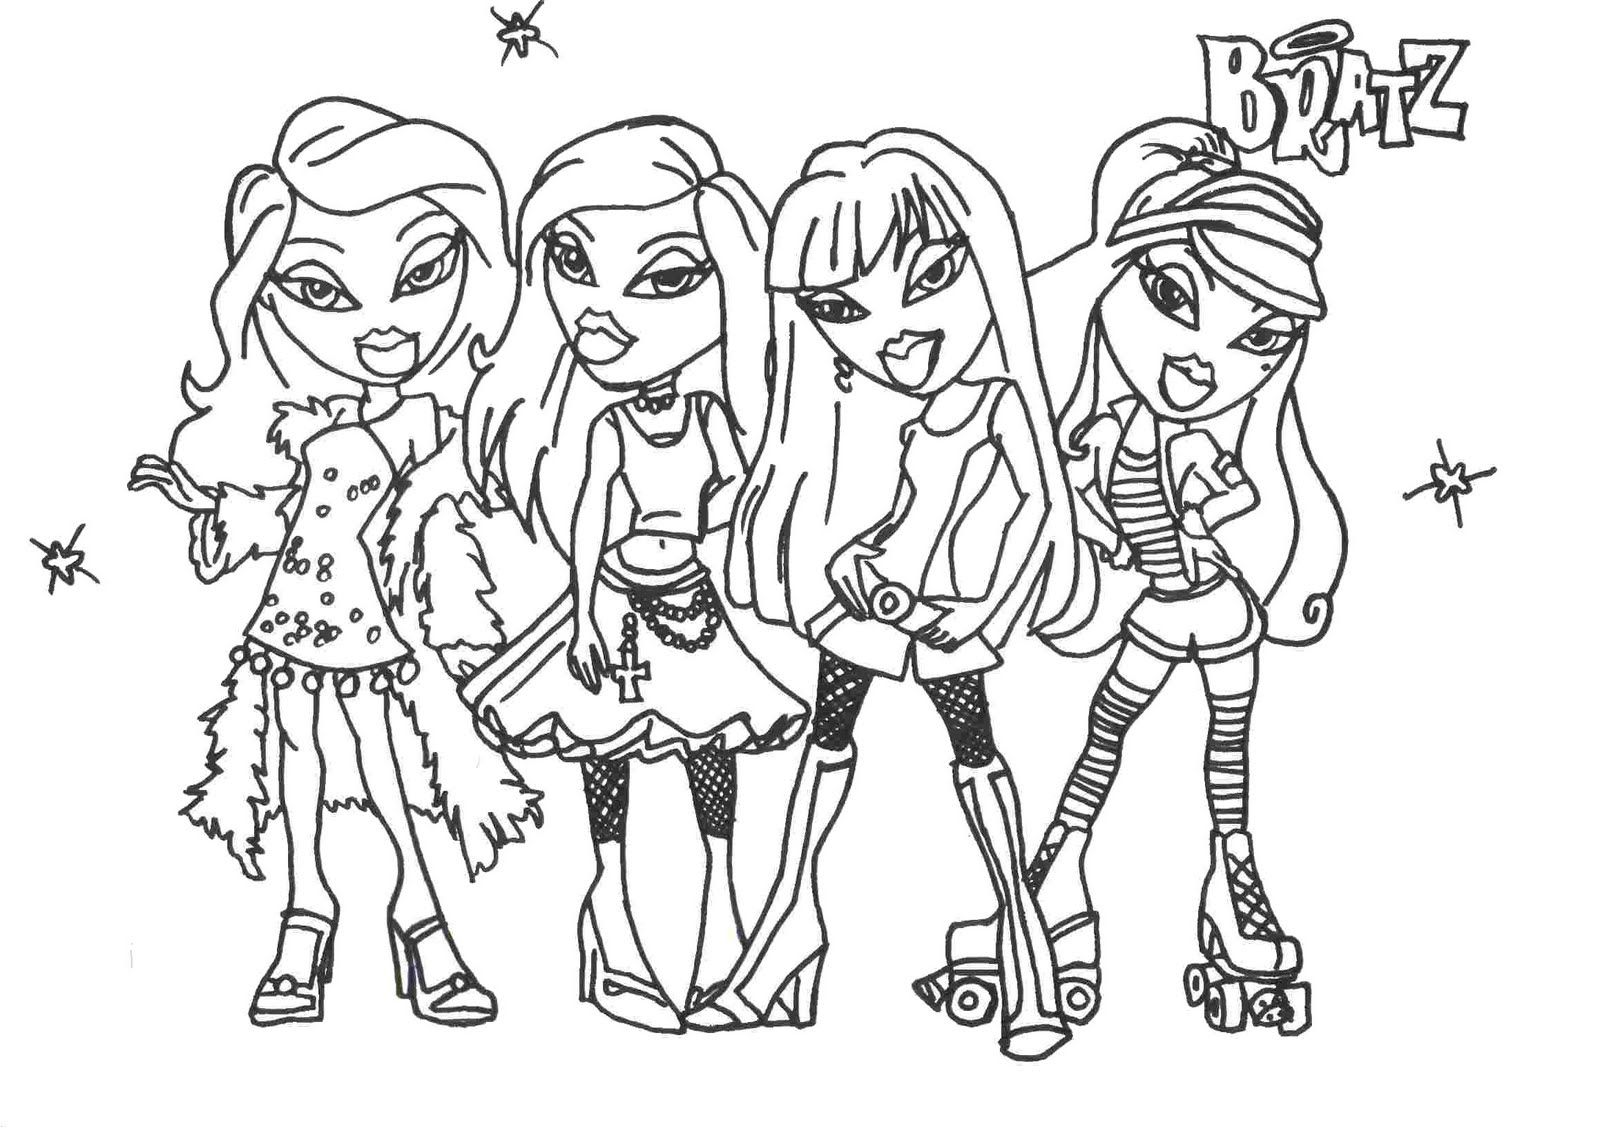 Bratz glamor girls coloring pages | Disney Princess Coloring Pages ...